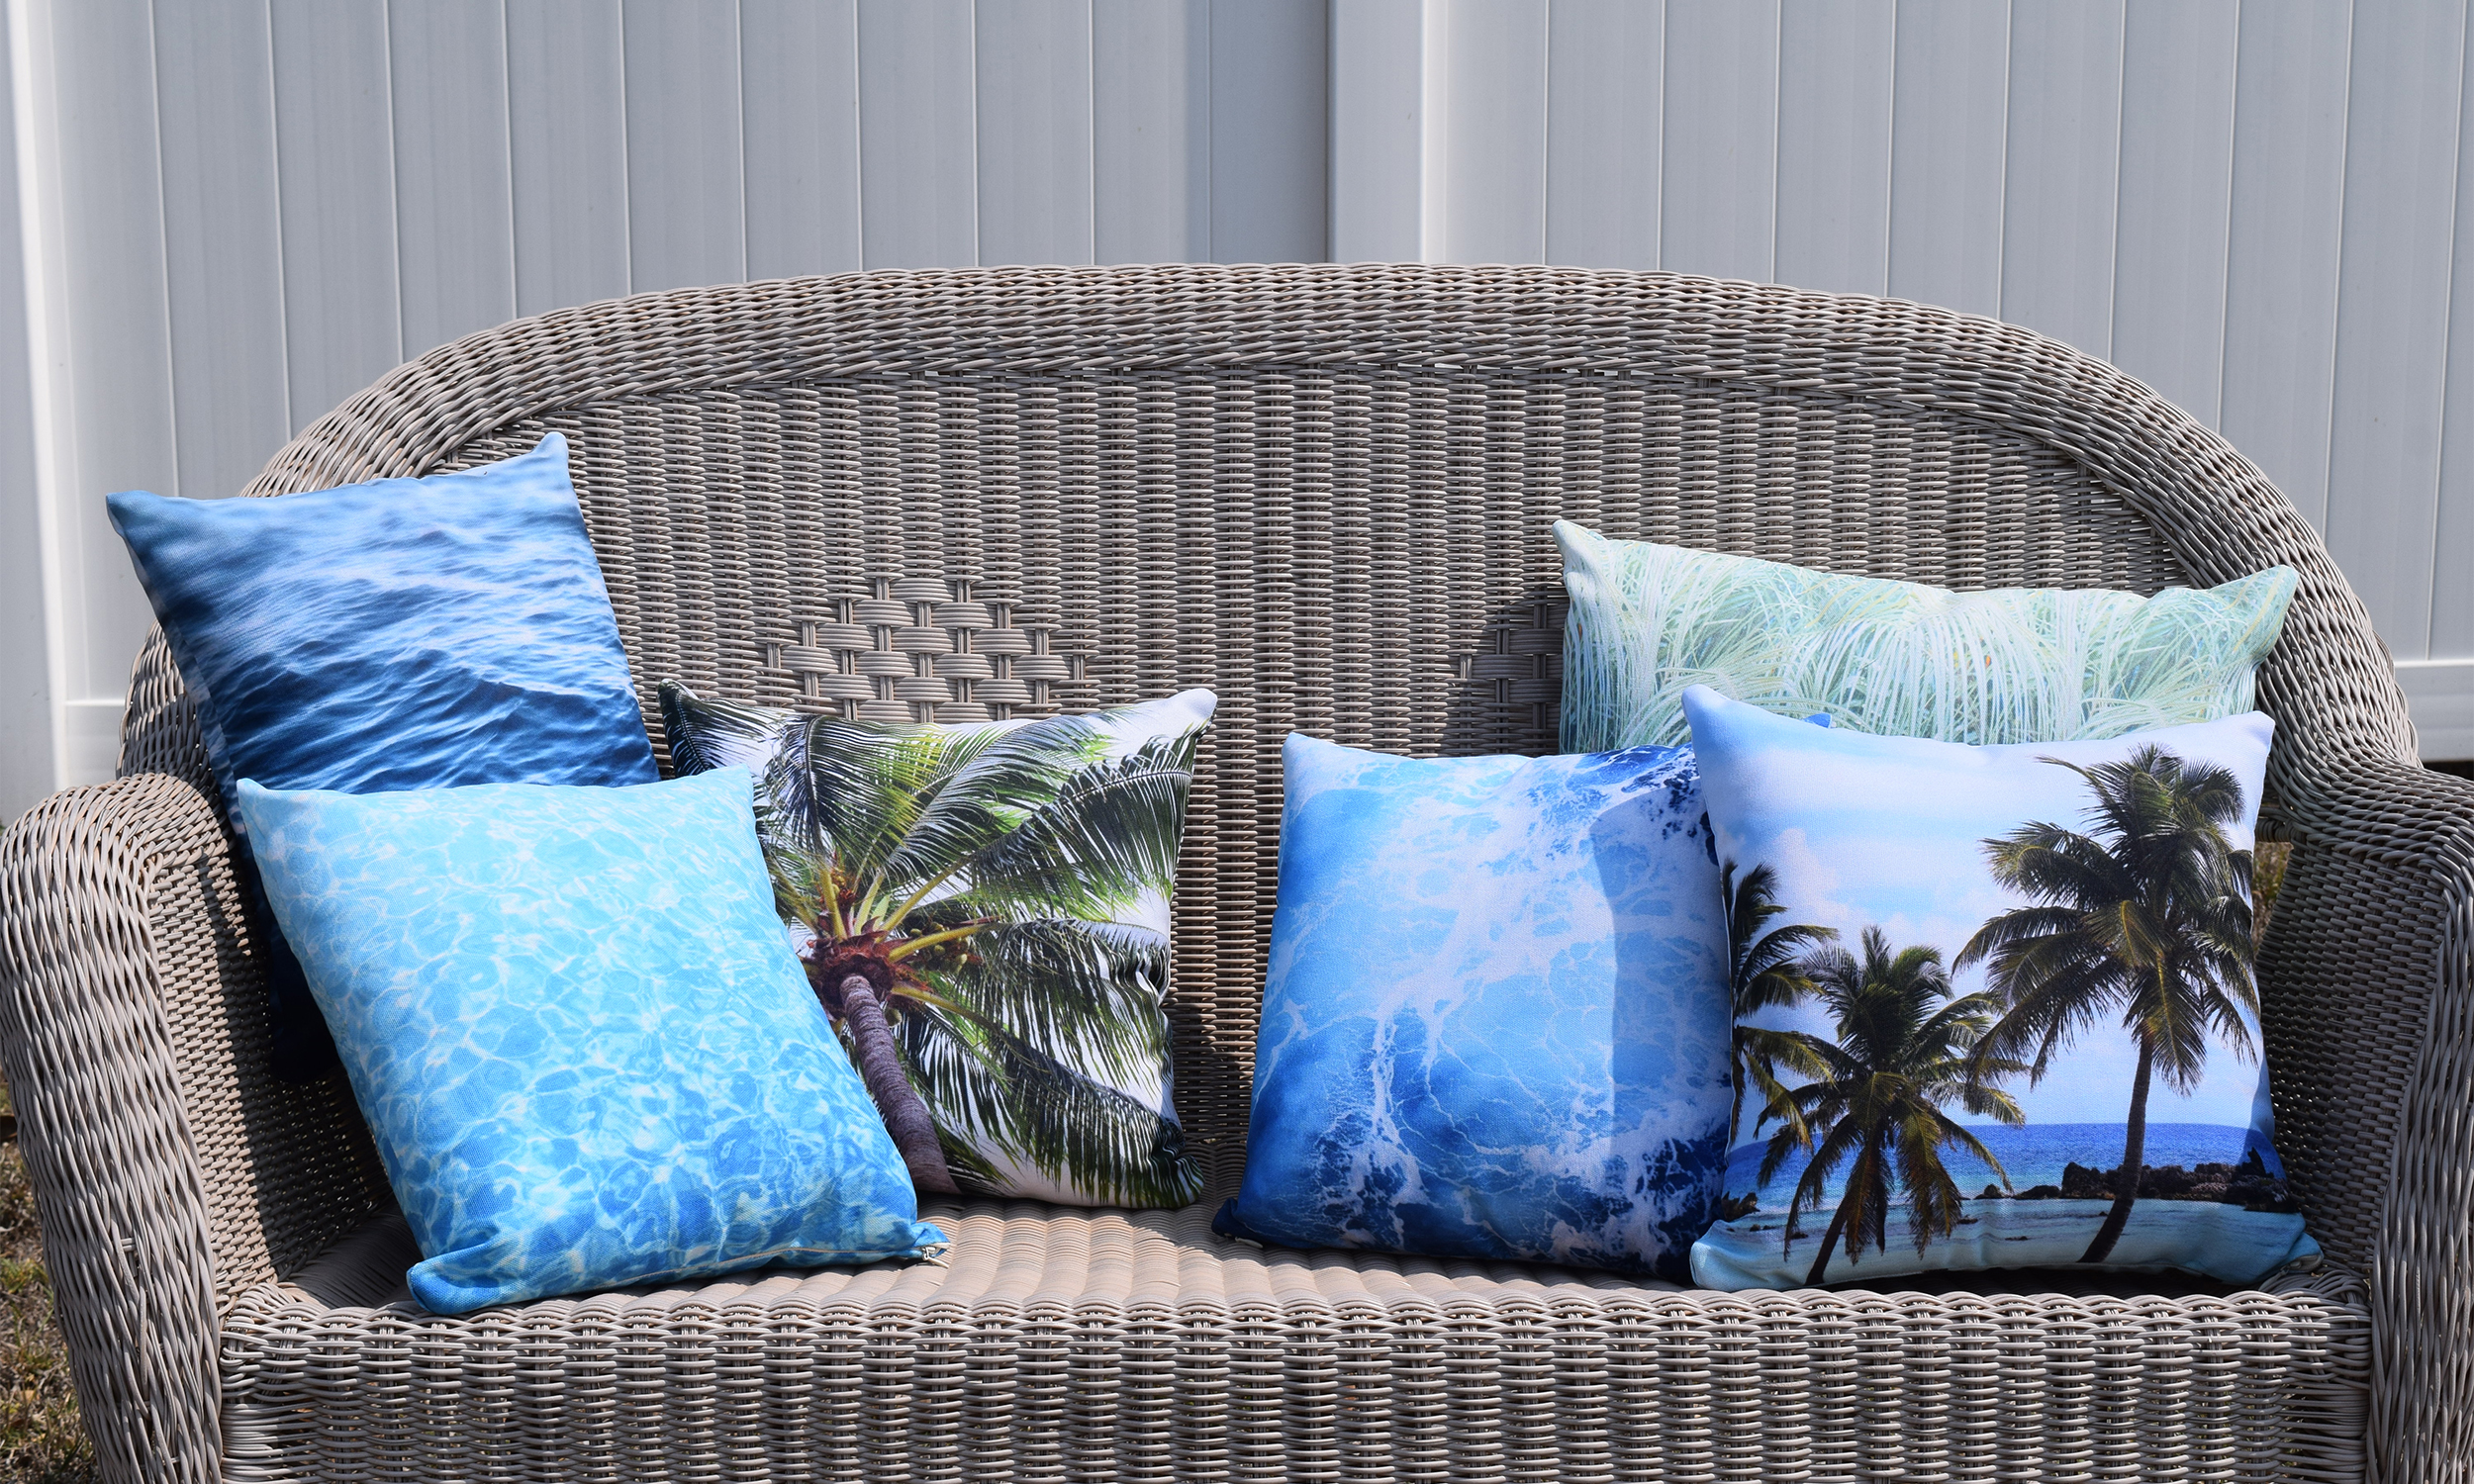 Five Throw Pillows on Bench - Nature | City Co.